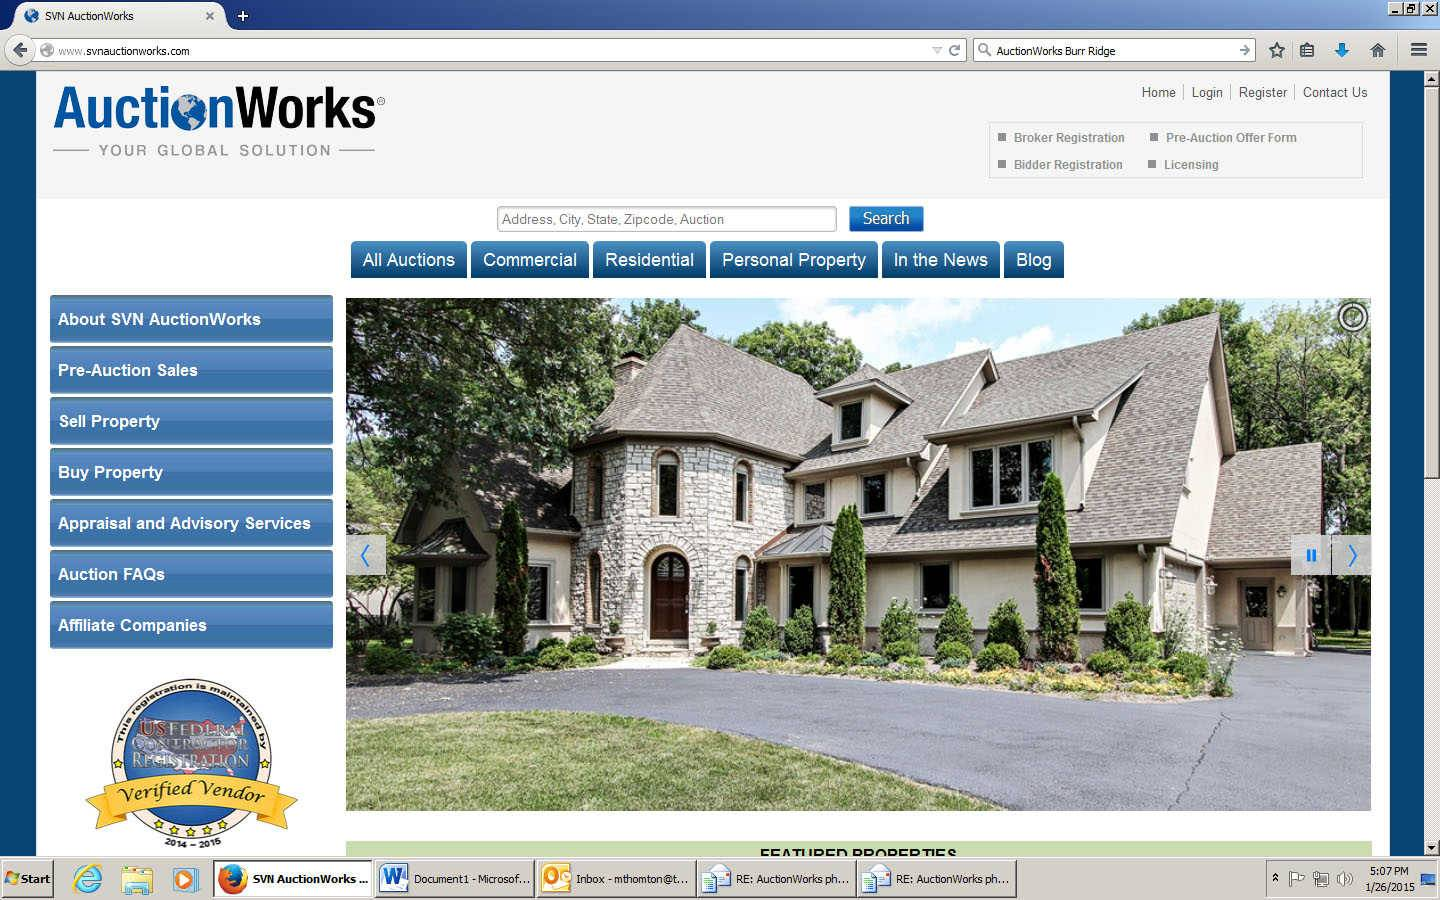 AuctionWorks.com offers online auctions for residential and commercial properties. But the site's president, Diana M. Peterson of Glencoe, says the auctions for luxury homes in Naperville, Riverwoods, Burr Ridge and other suburbs attract the most attention.